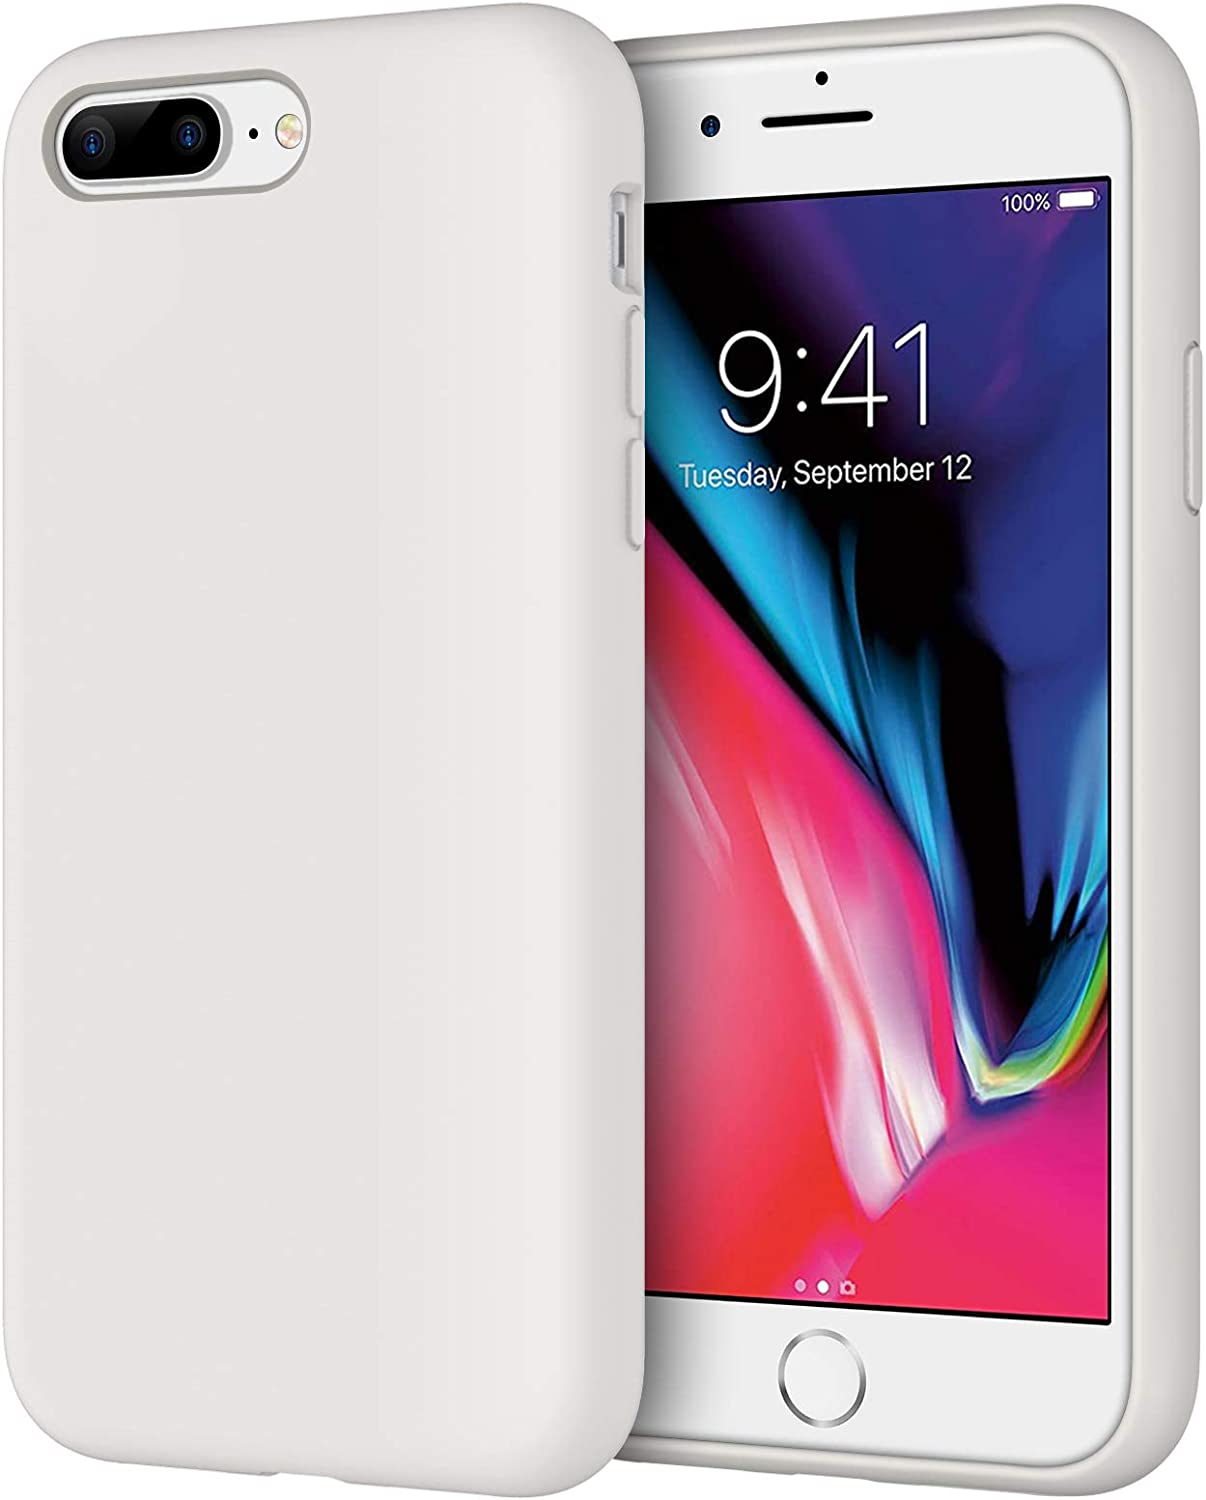 JETech Silicone Case for iPhone 7 Plus, iPhone 8 Plus, 5.5 Inch, Silky-Soft Touch Full-Body Protective Case, Shockproof Cover with Microfiber Lining, White